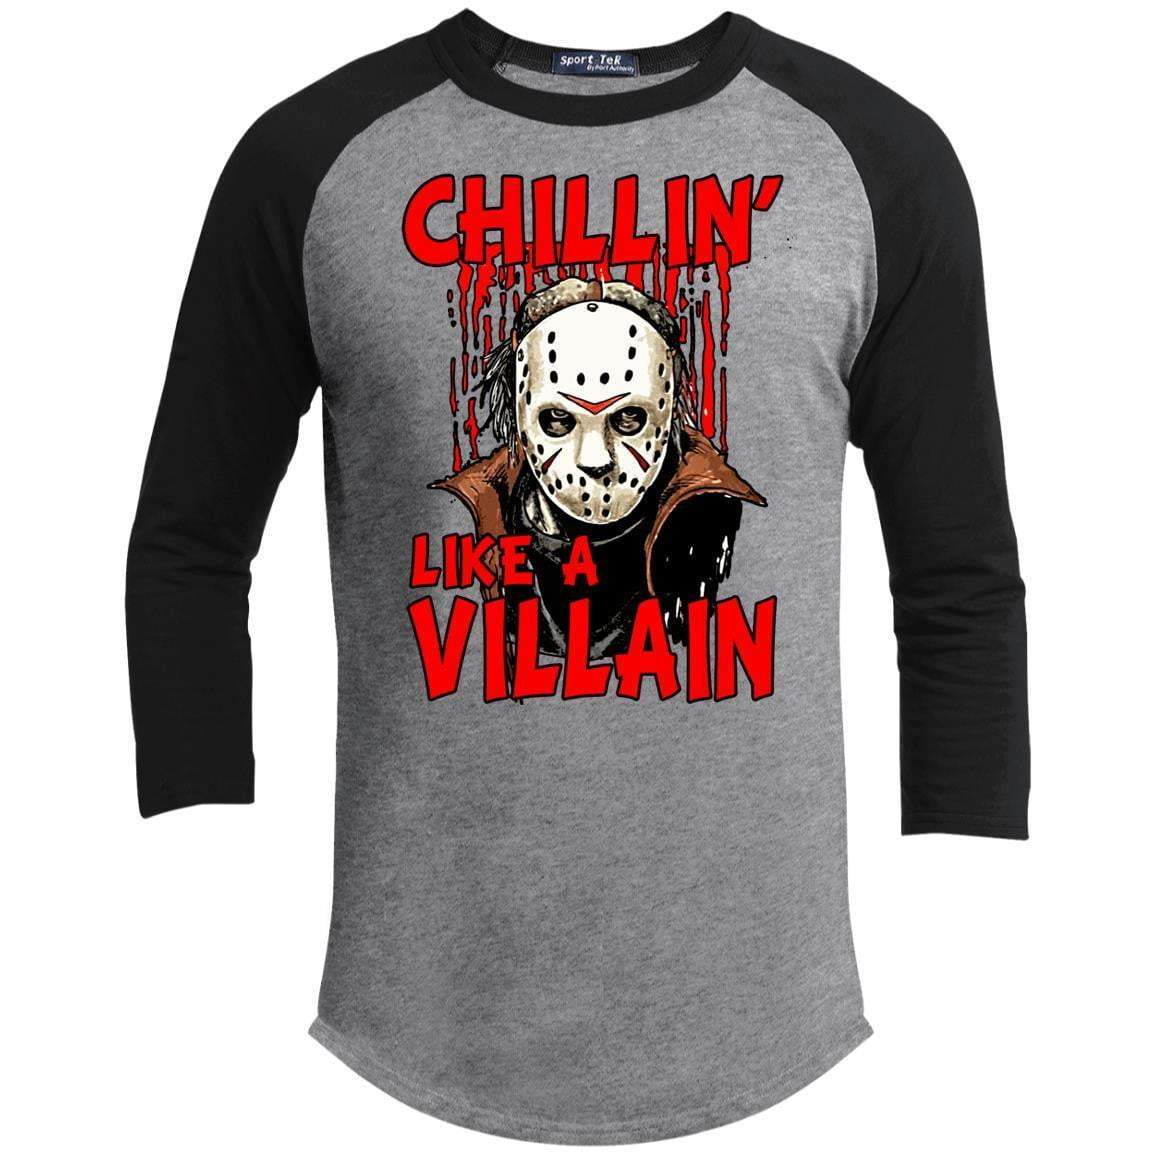 CHILLIN LIKE A VILLAIN - JASON Unisex 3/4 Sleeve Raglan